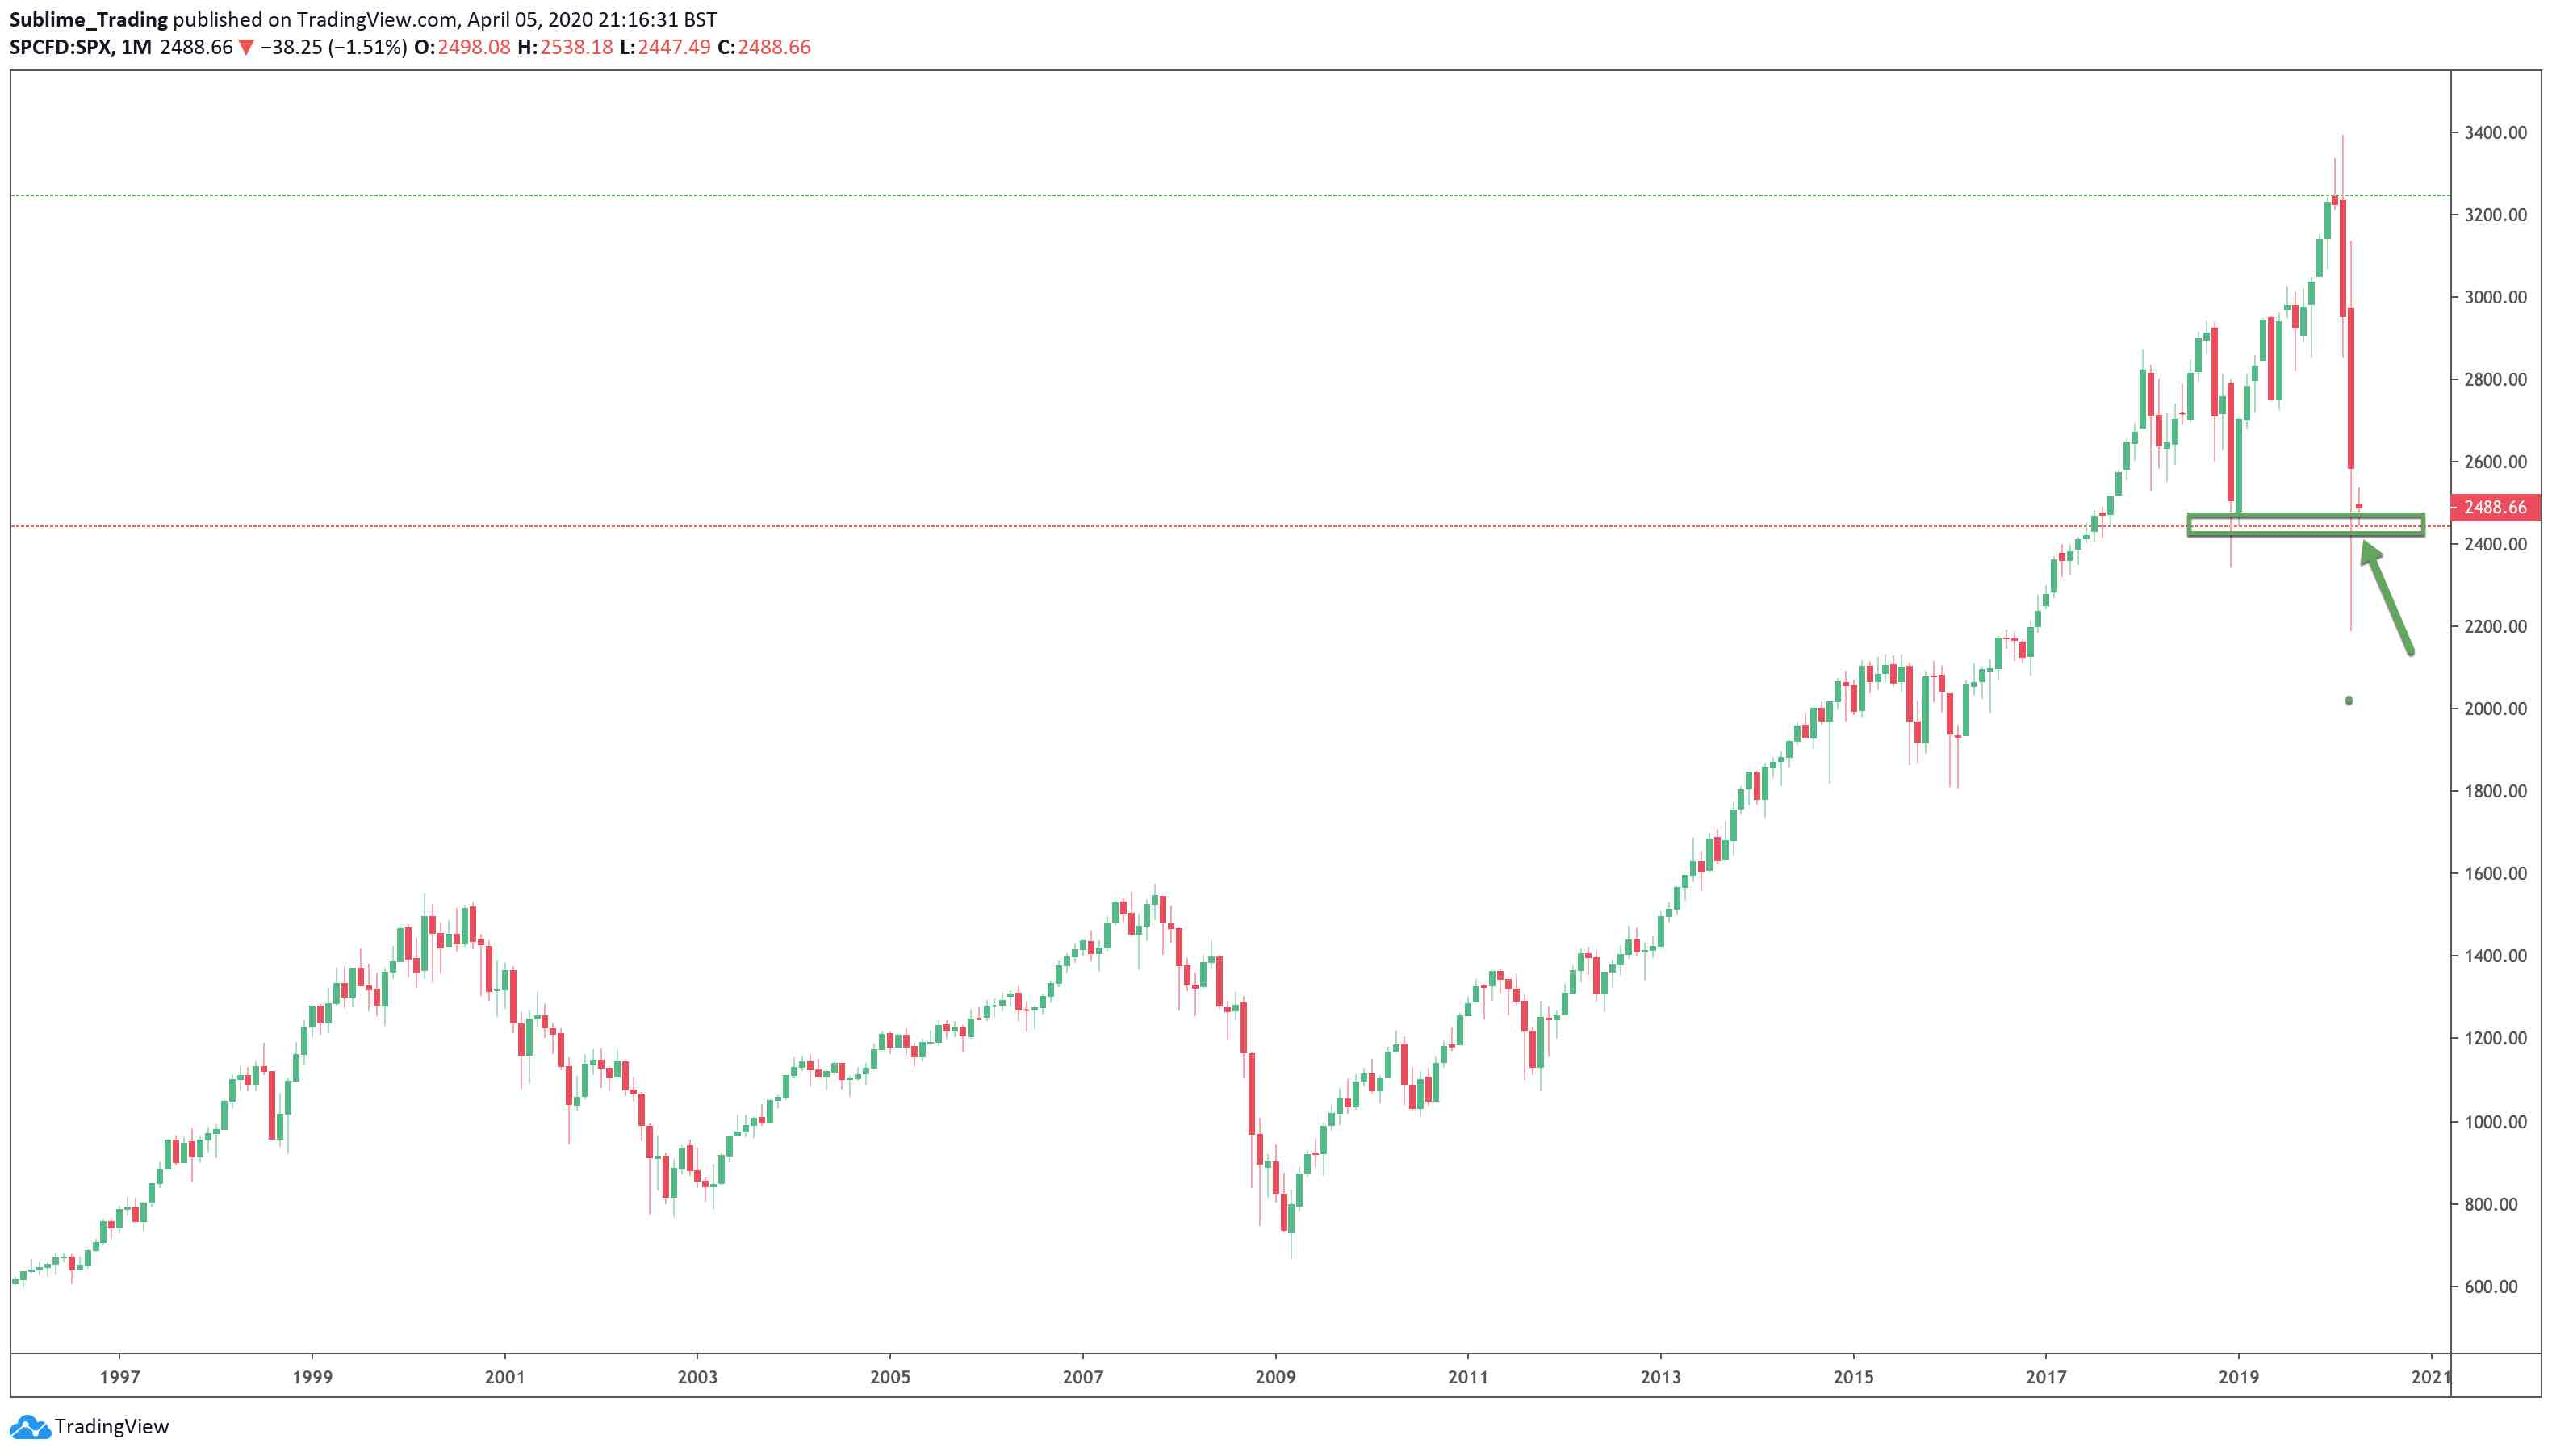 The low of 2019 is being used as support on the S&P 500.